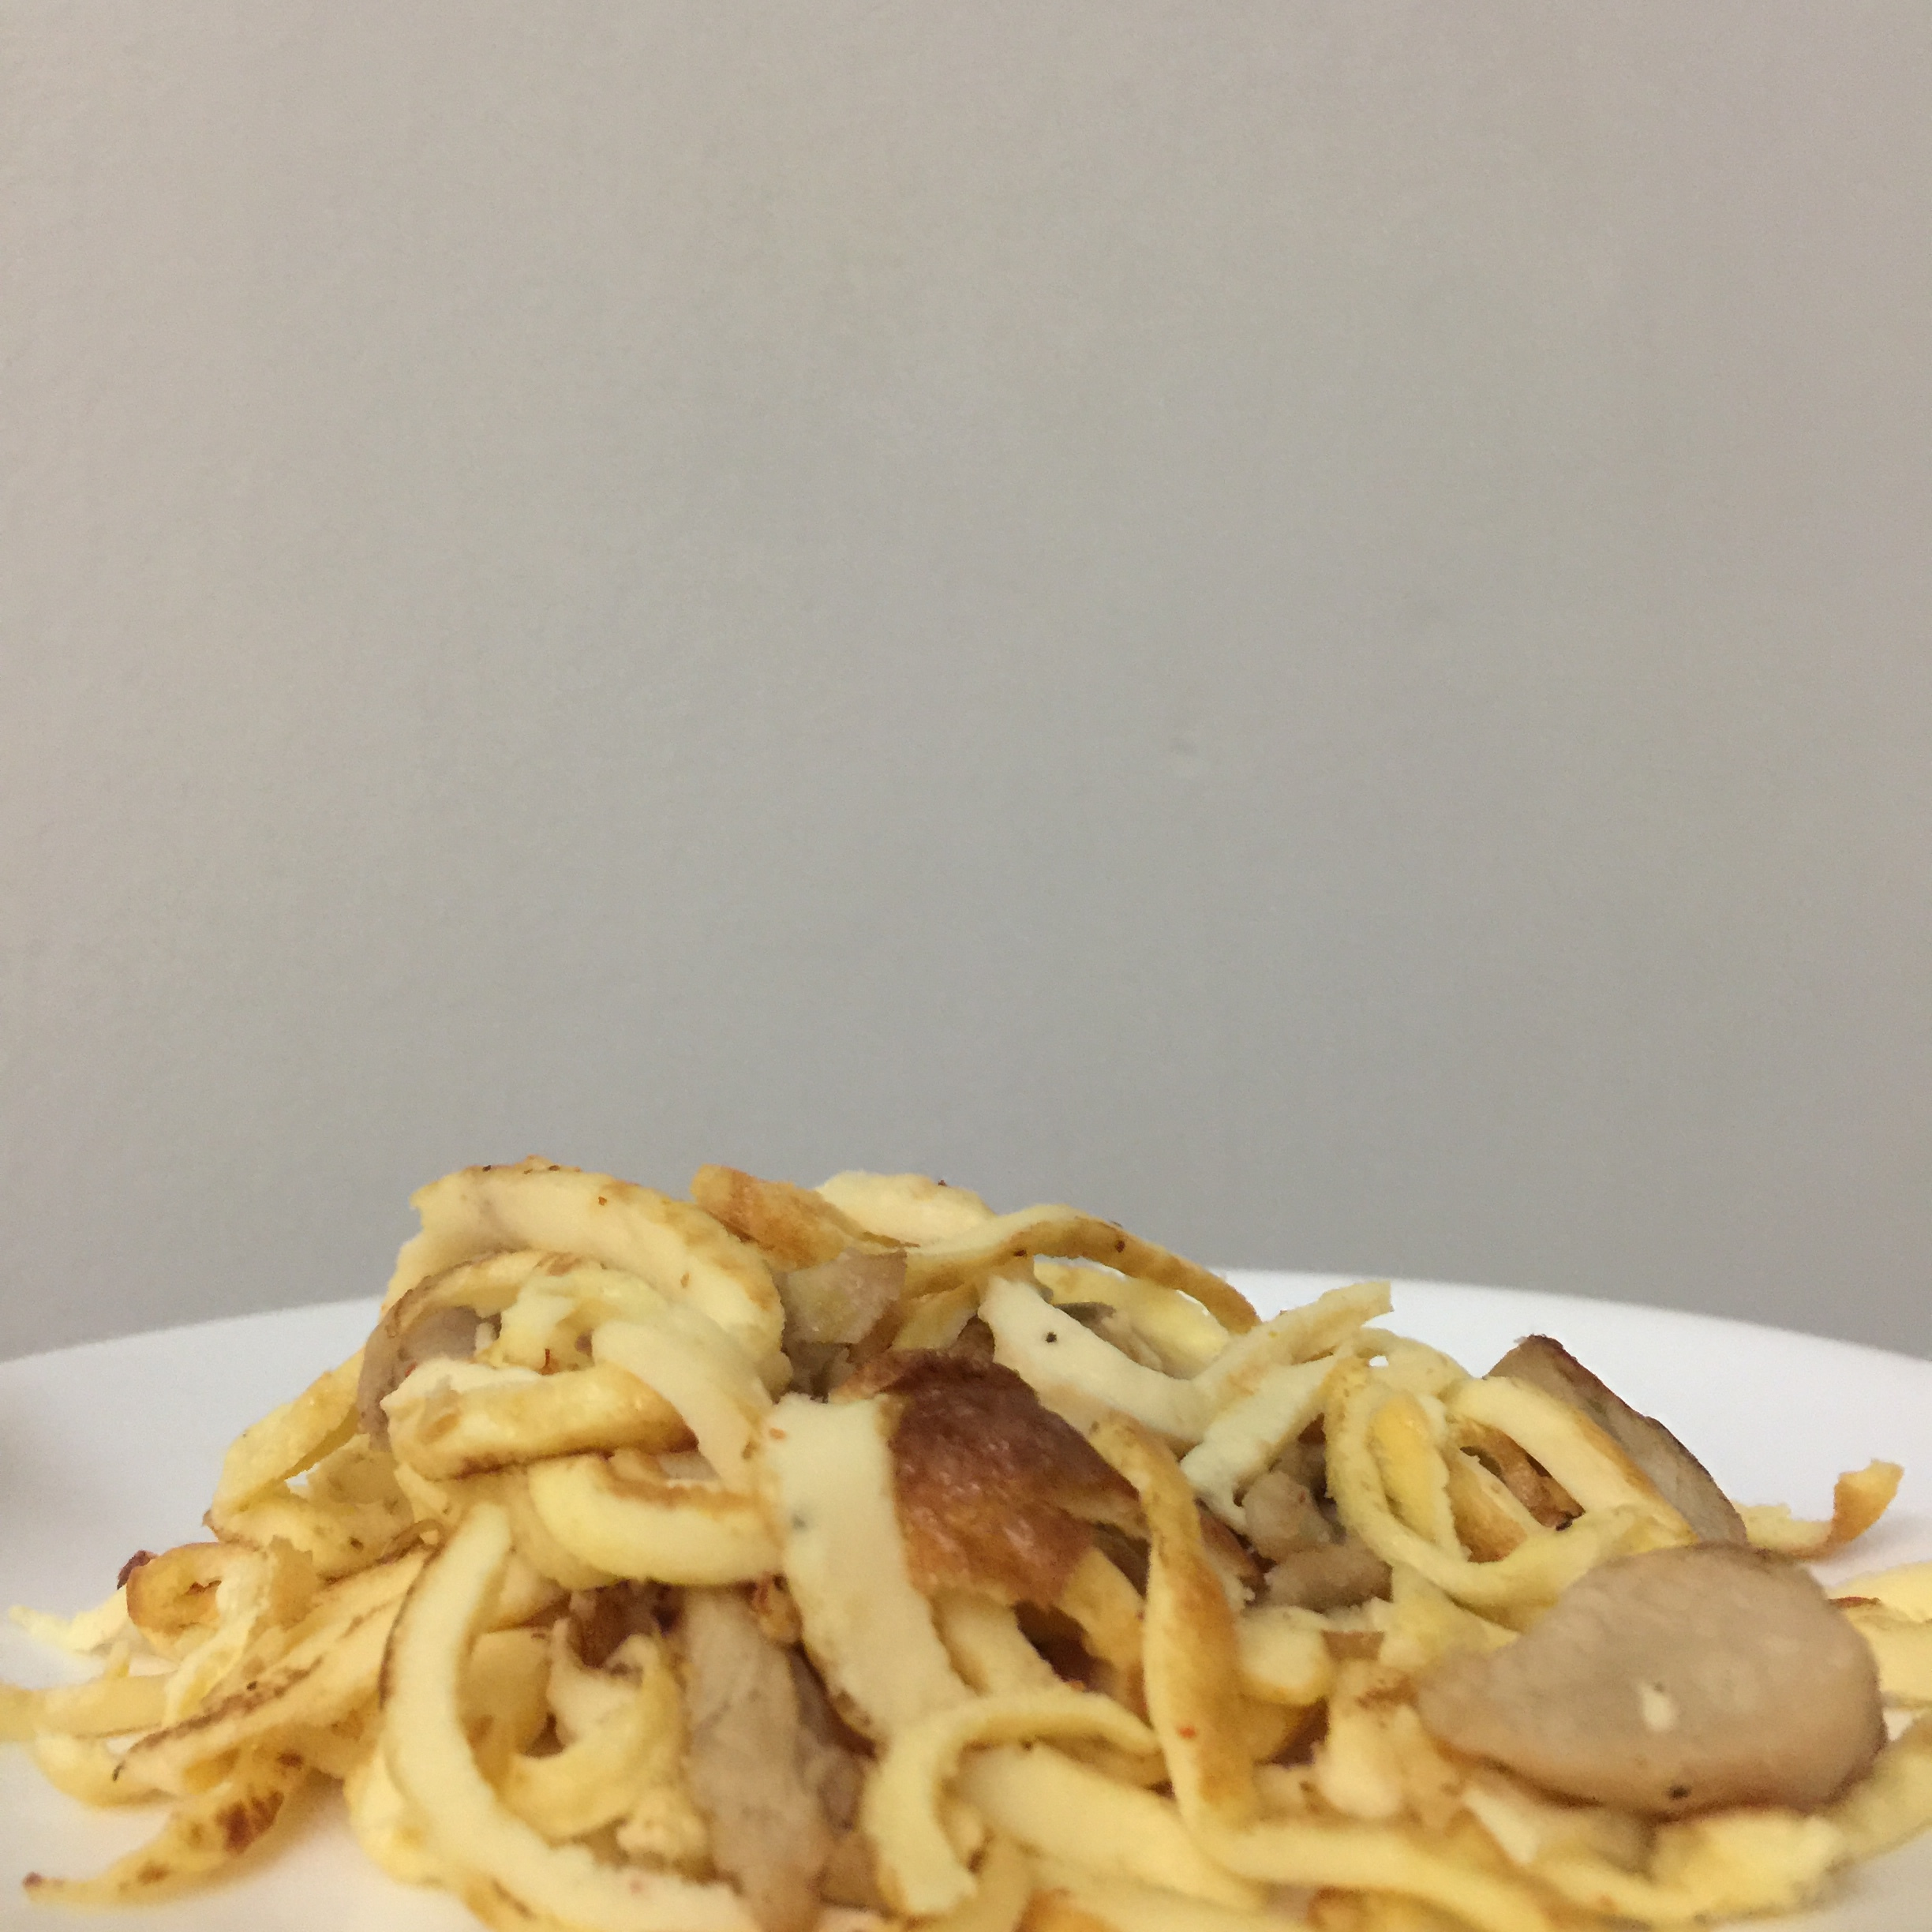 Fried egg noodles (noodles made with egg and cheese, ONLY!!)